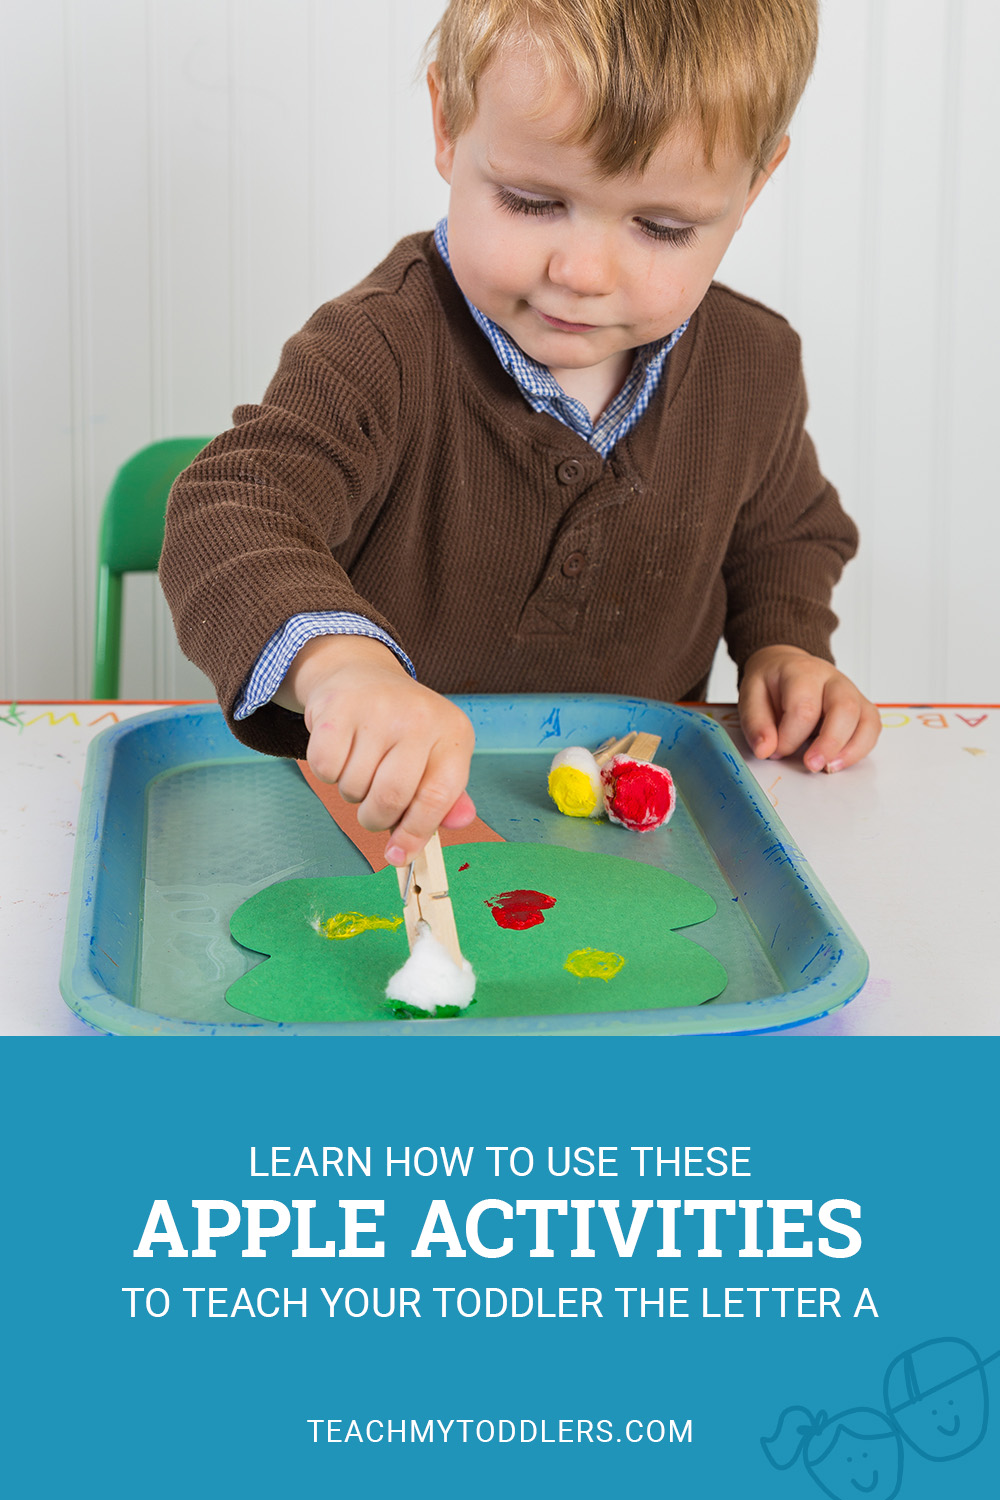 Learn how to use these a is for apples activities to teach your toddlers the letter a